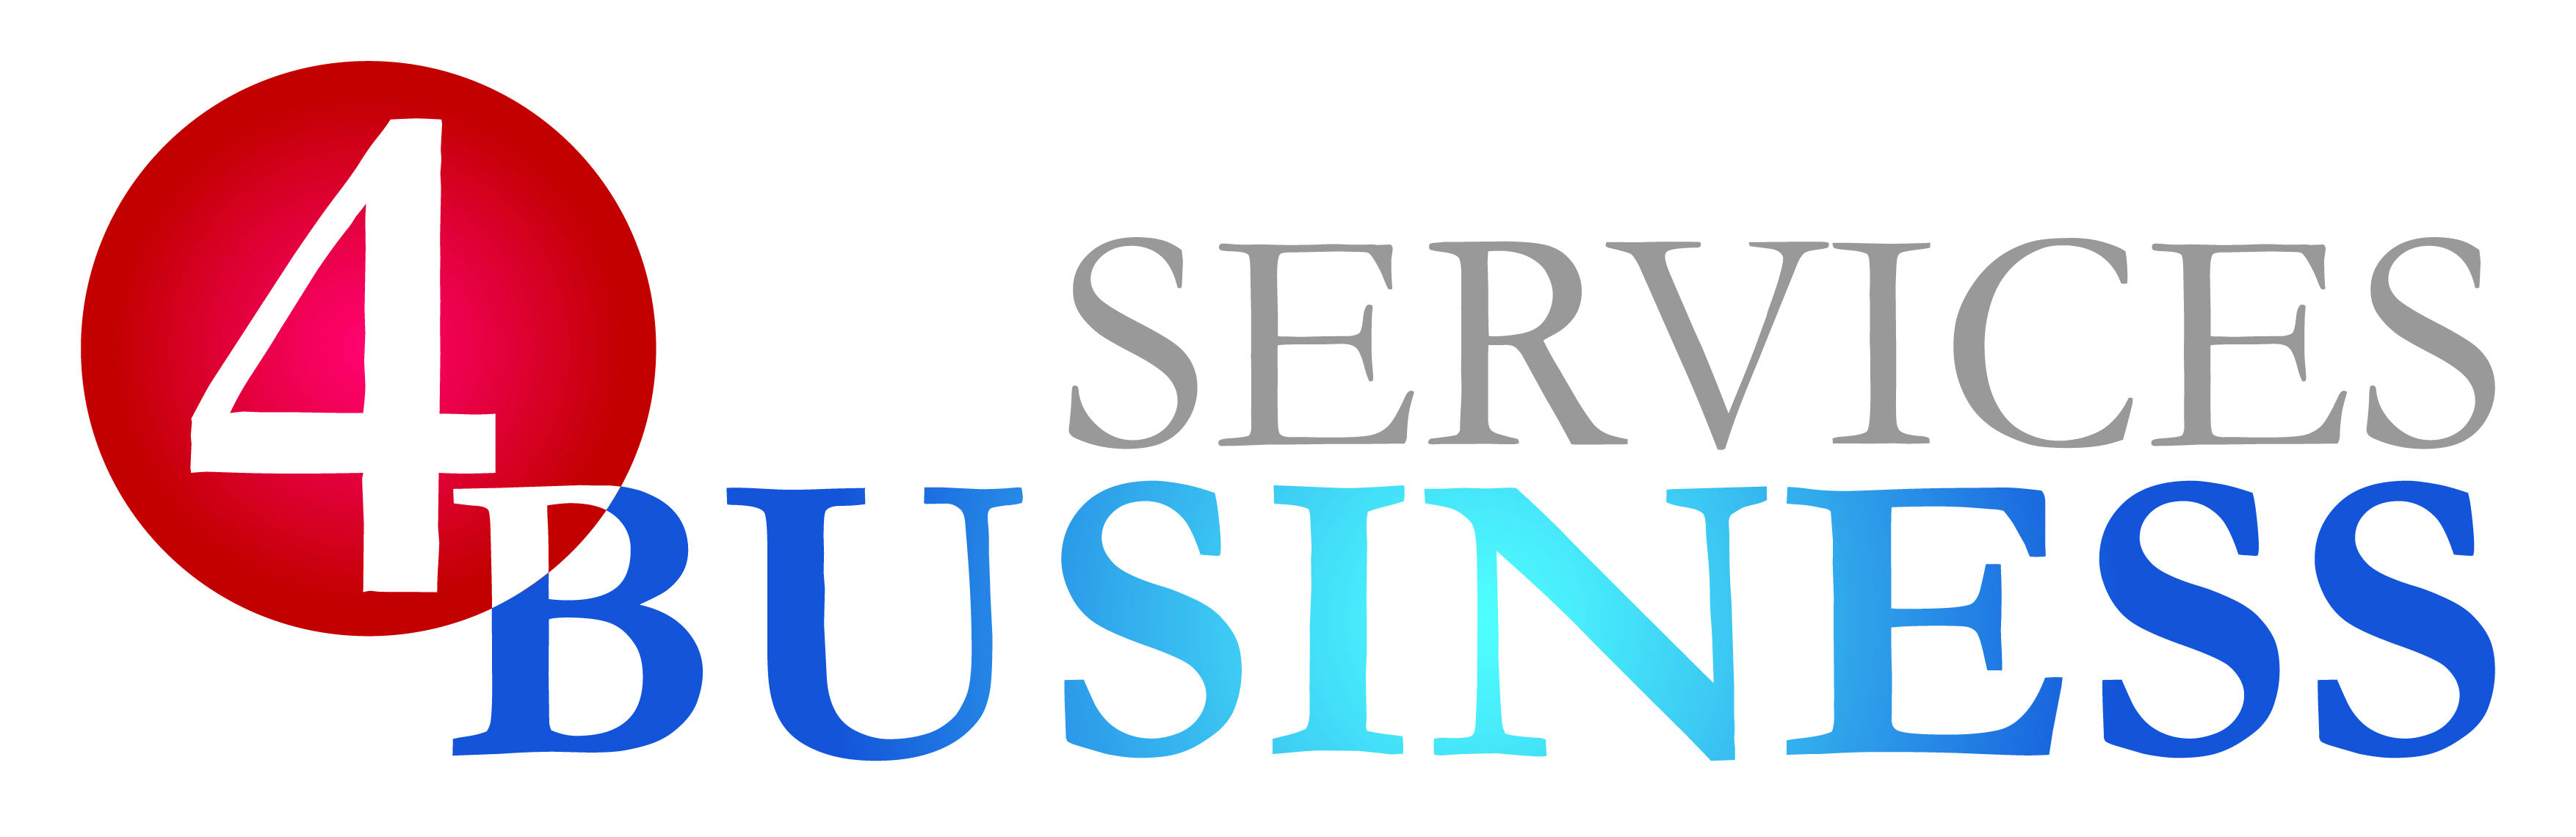 4Business Services